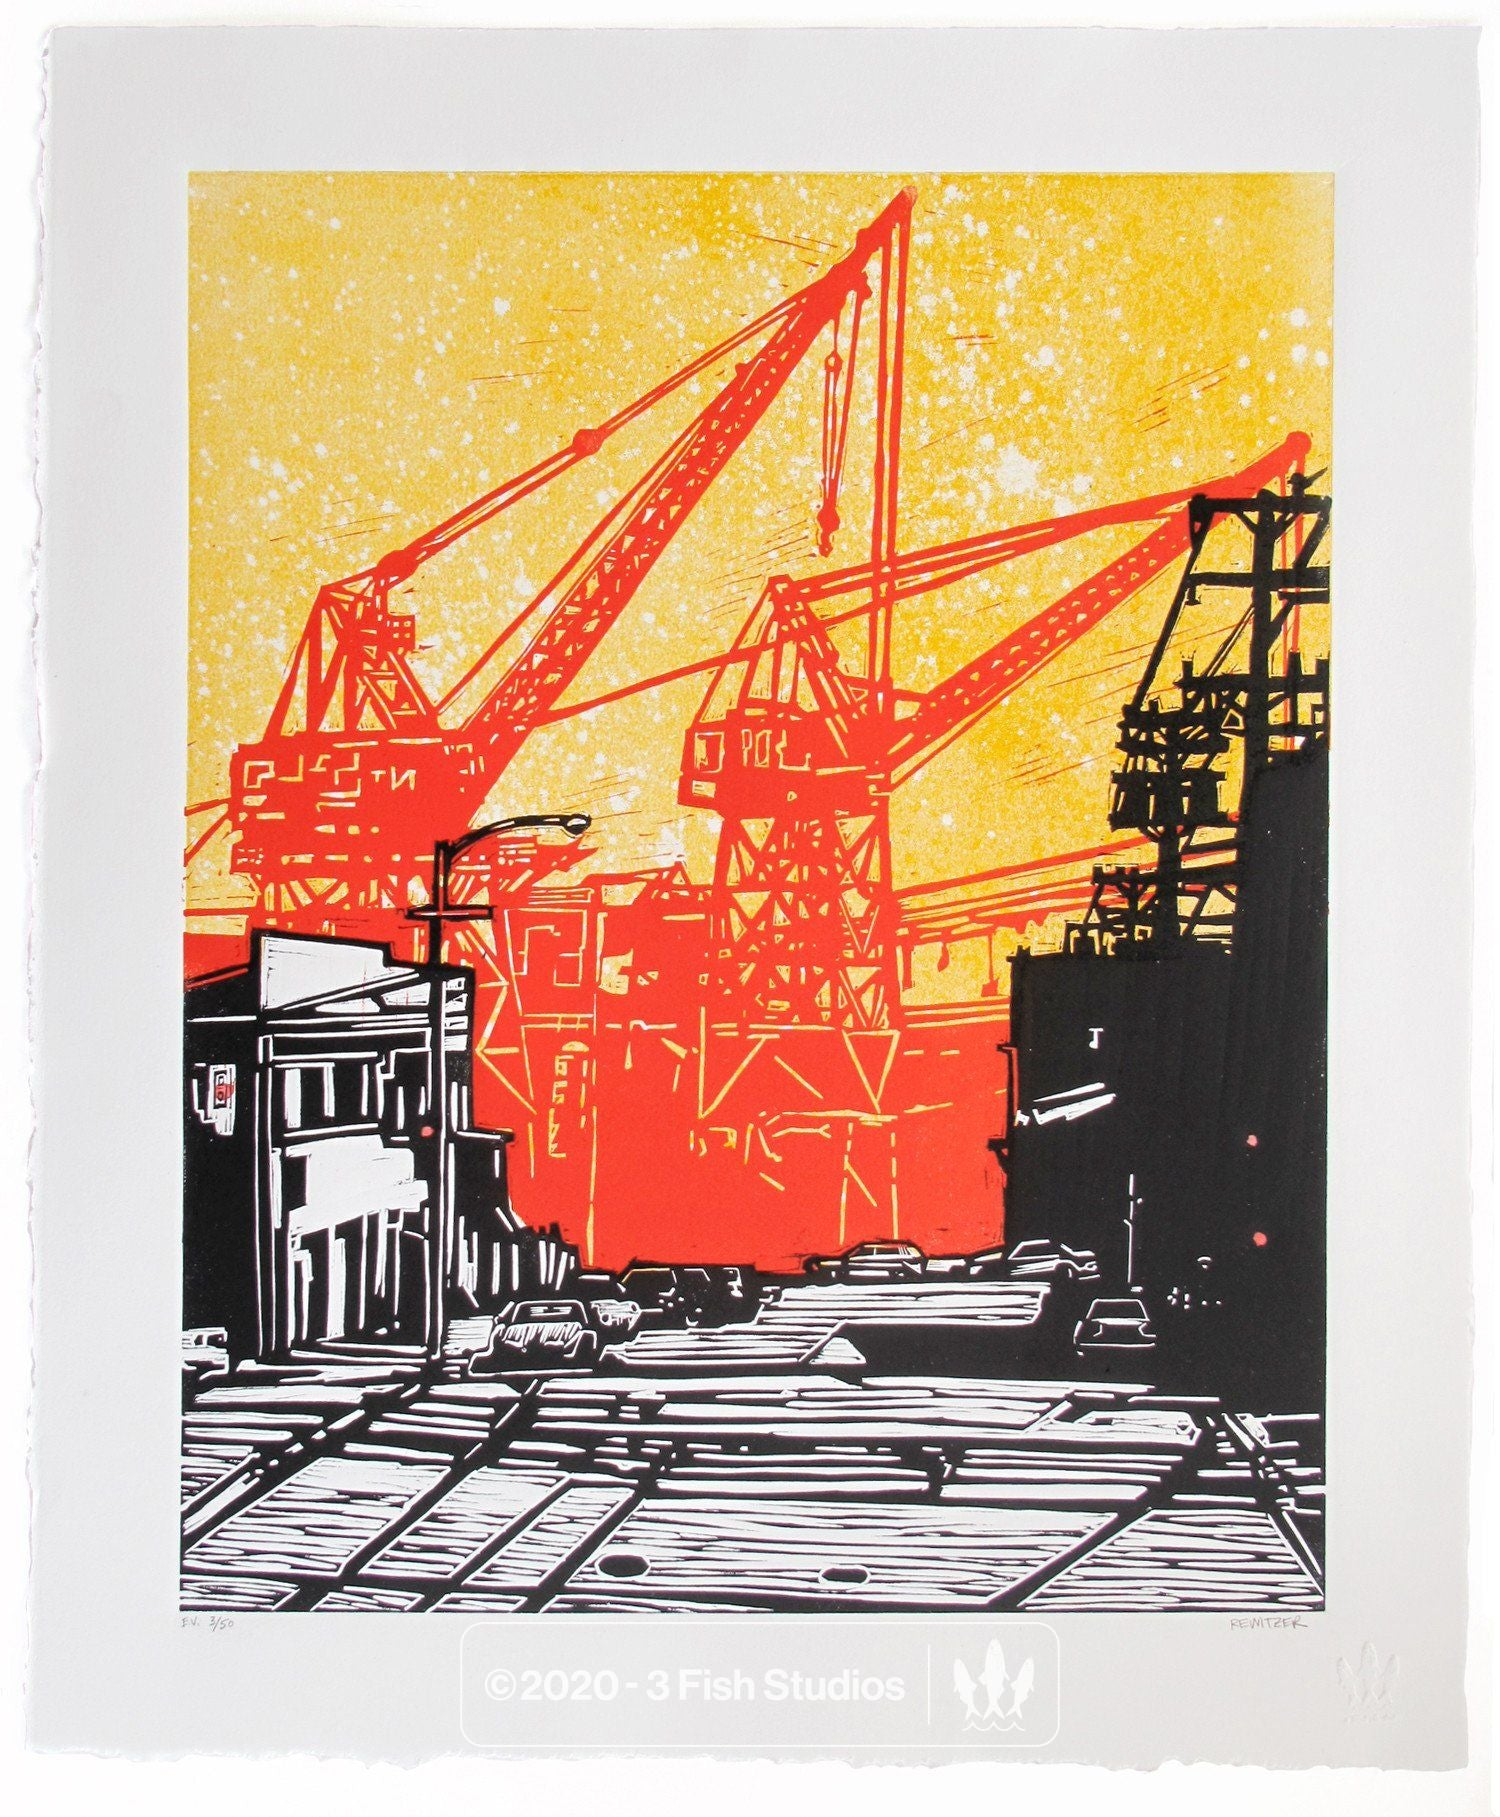 Dogpatch — Original Print by Eric Rewitzer – 3 Fish Studios